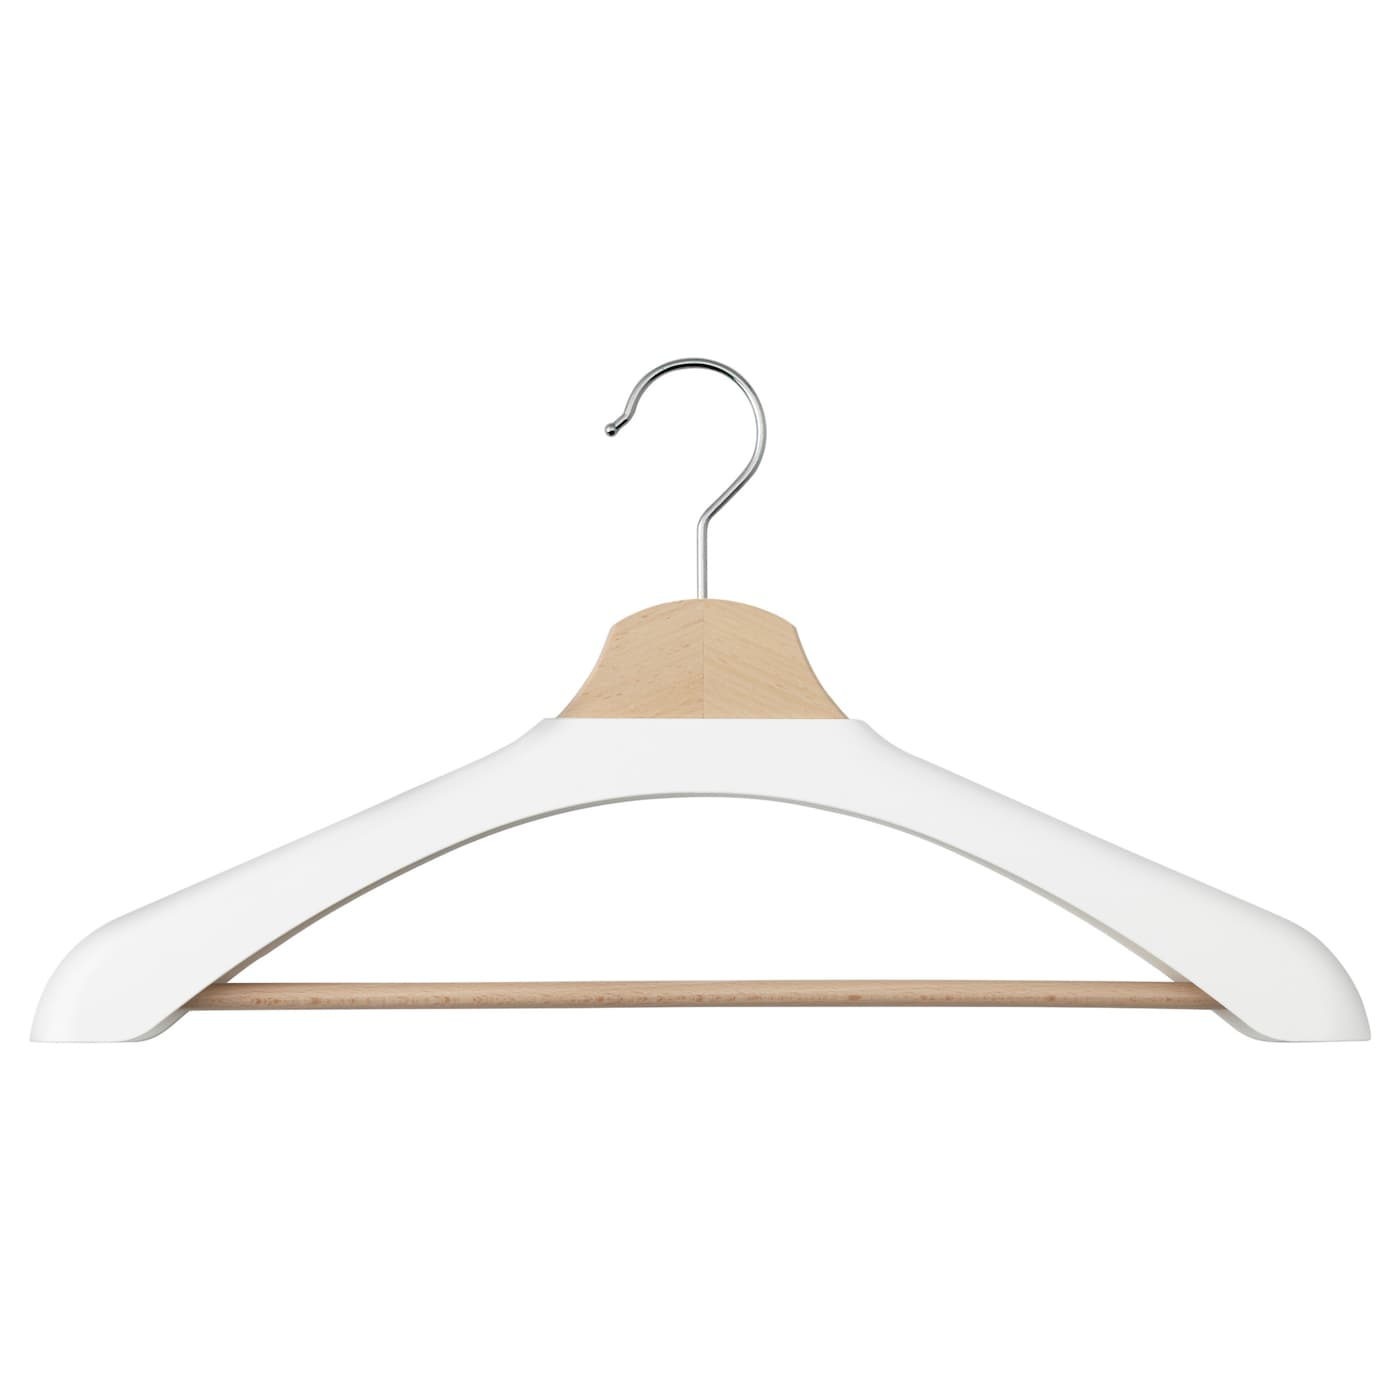 Bumerang shoulder shaper for hanger white ikea for Ikea clothes hangers